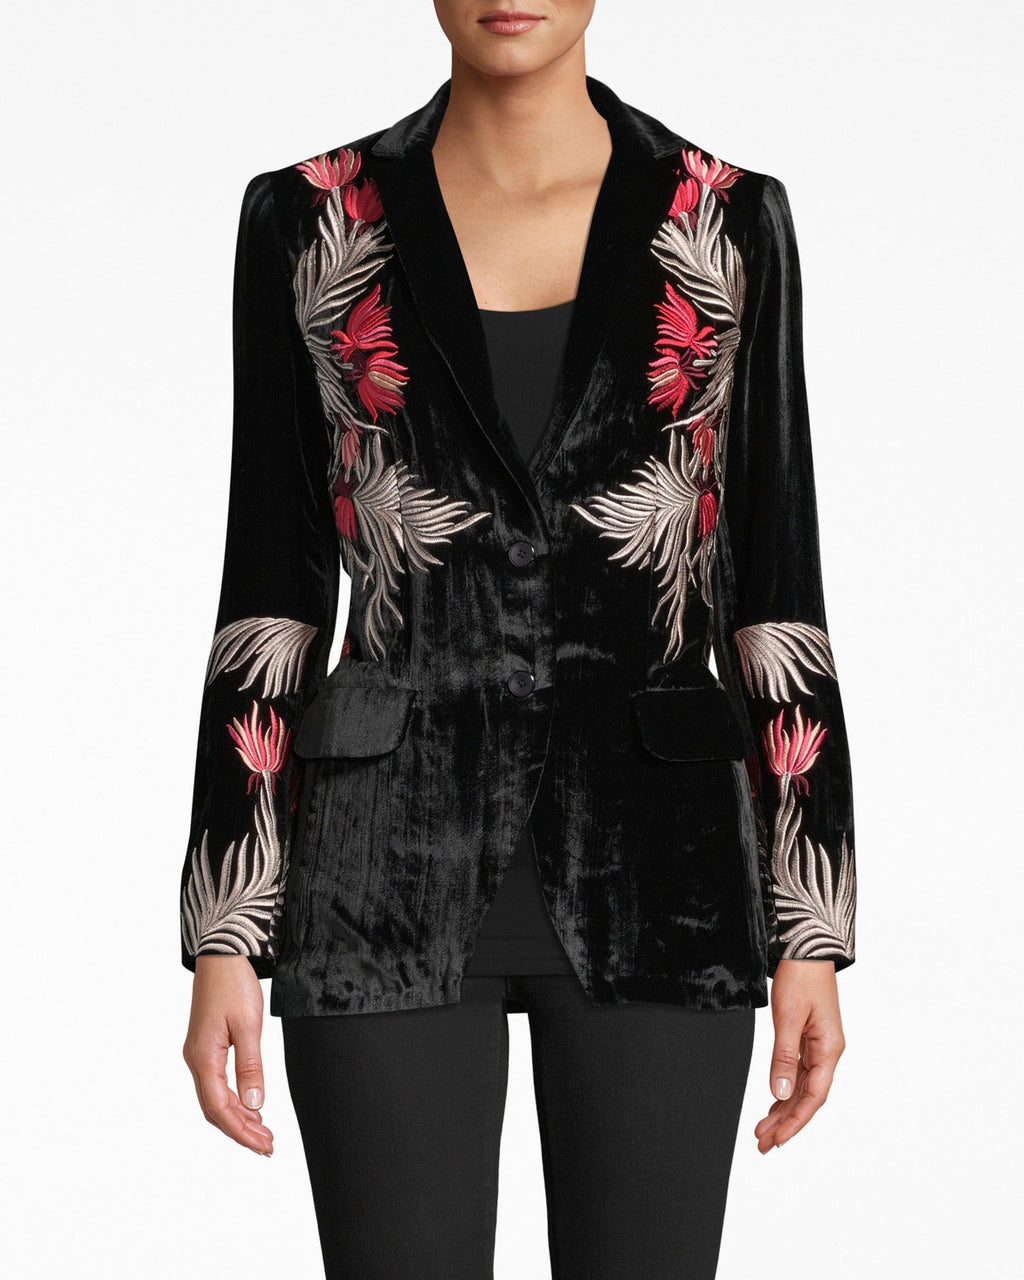 DA20044 - EMBROIDERED VELVET BLAZER - outerwear - jackets - This embroidered jacket is a velvety dream. Modern detailing flourishes on the upper body and lower sleeves. A classic tailored fit keeps it polished for dinner.